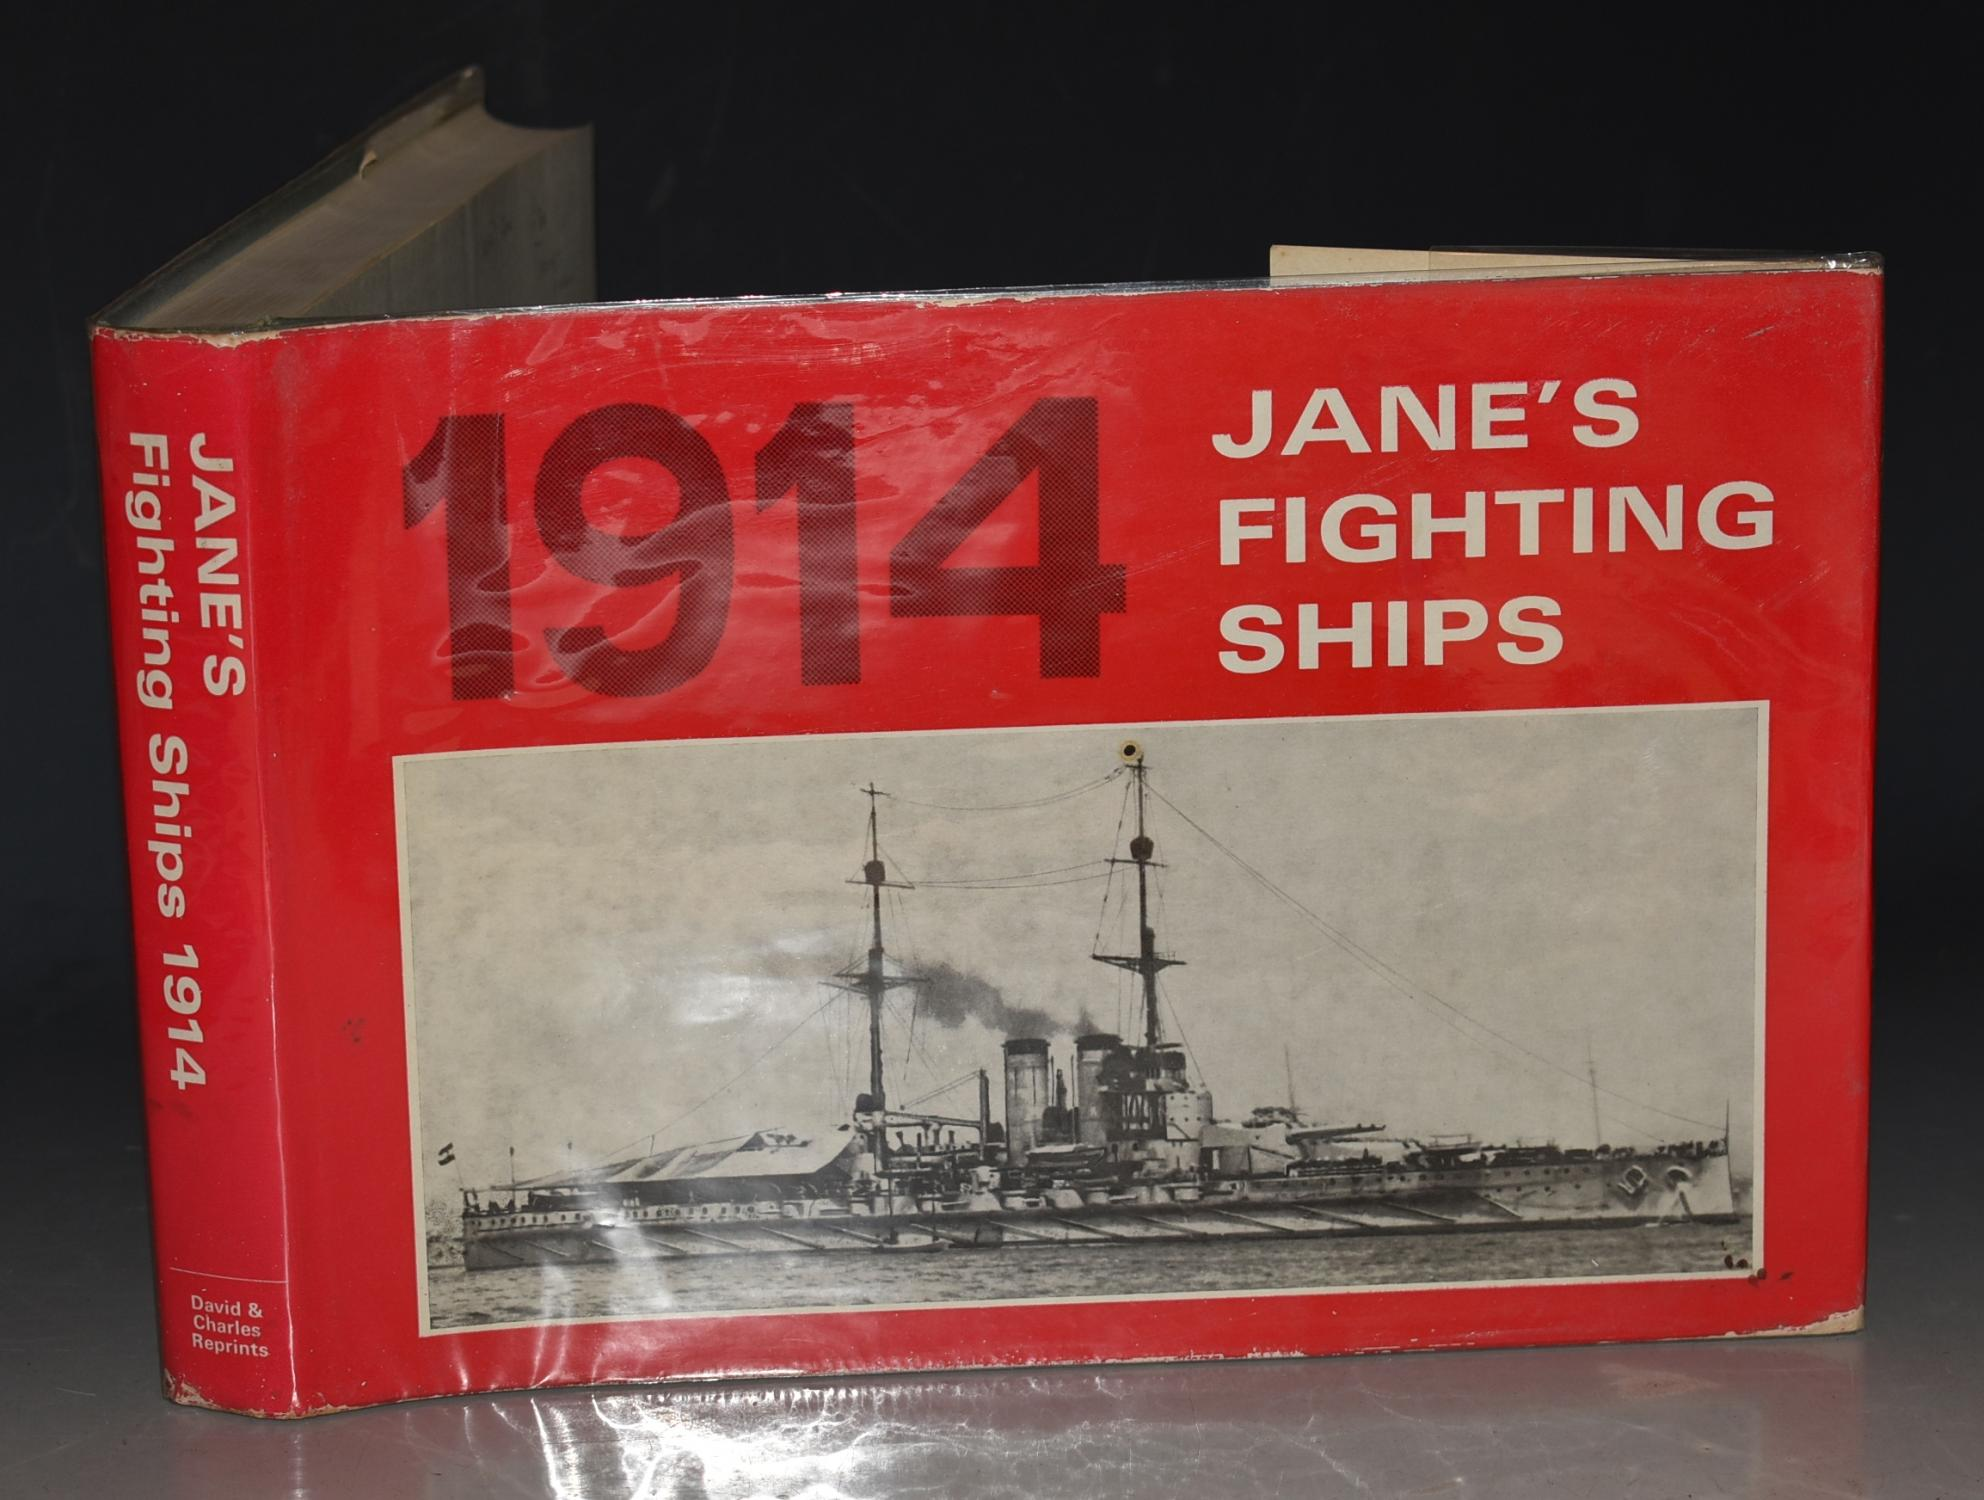 Jane's Fighting Ships 1914 A Reprint of the 1914 Edition of Fighting Ships. Including a chapter on the Progress of Marine Engineering by Charles De Grave Sells.